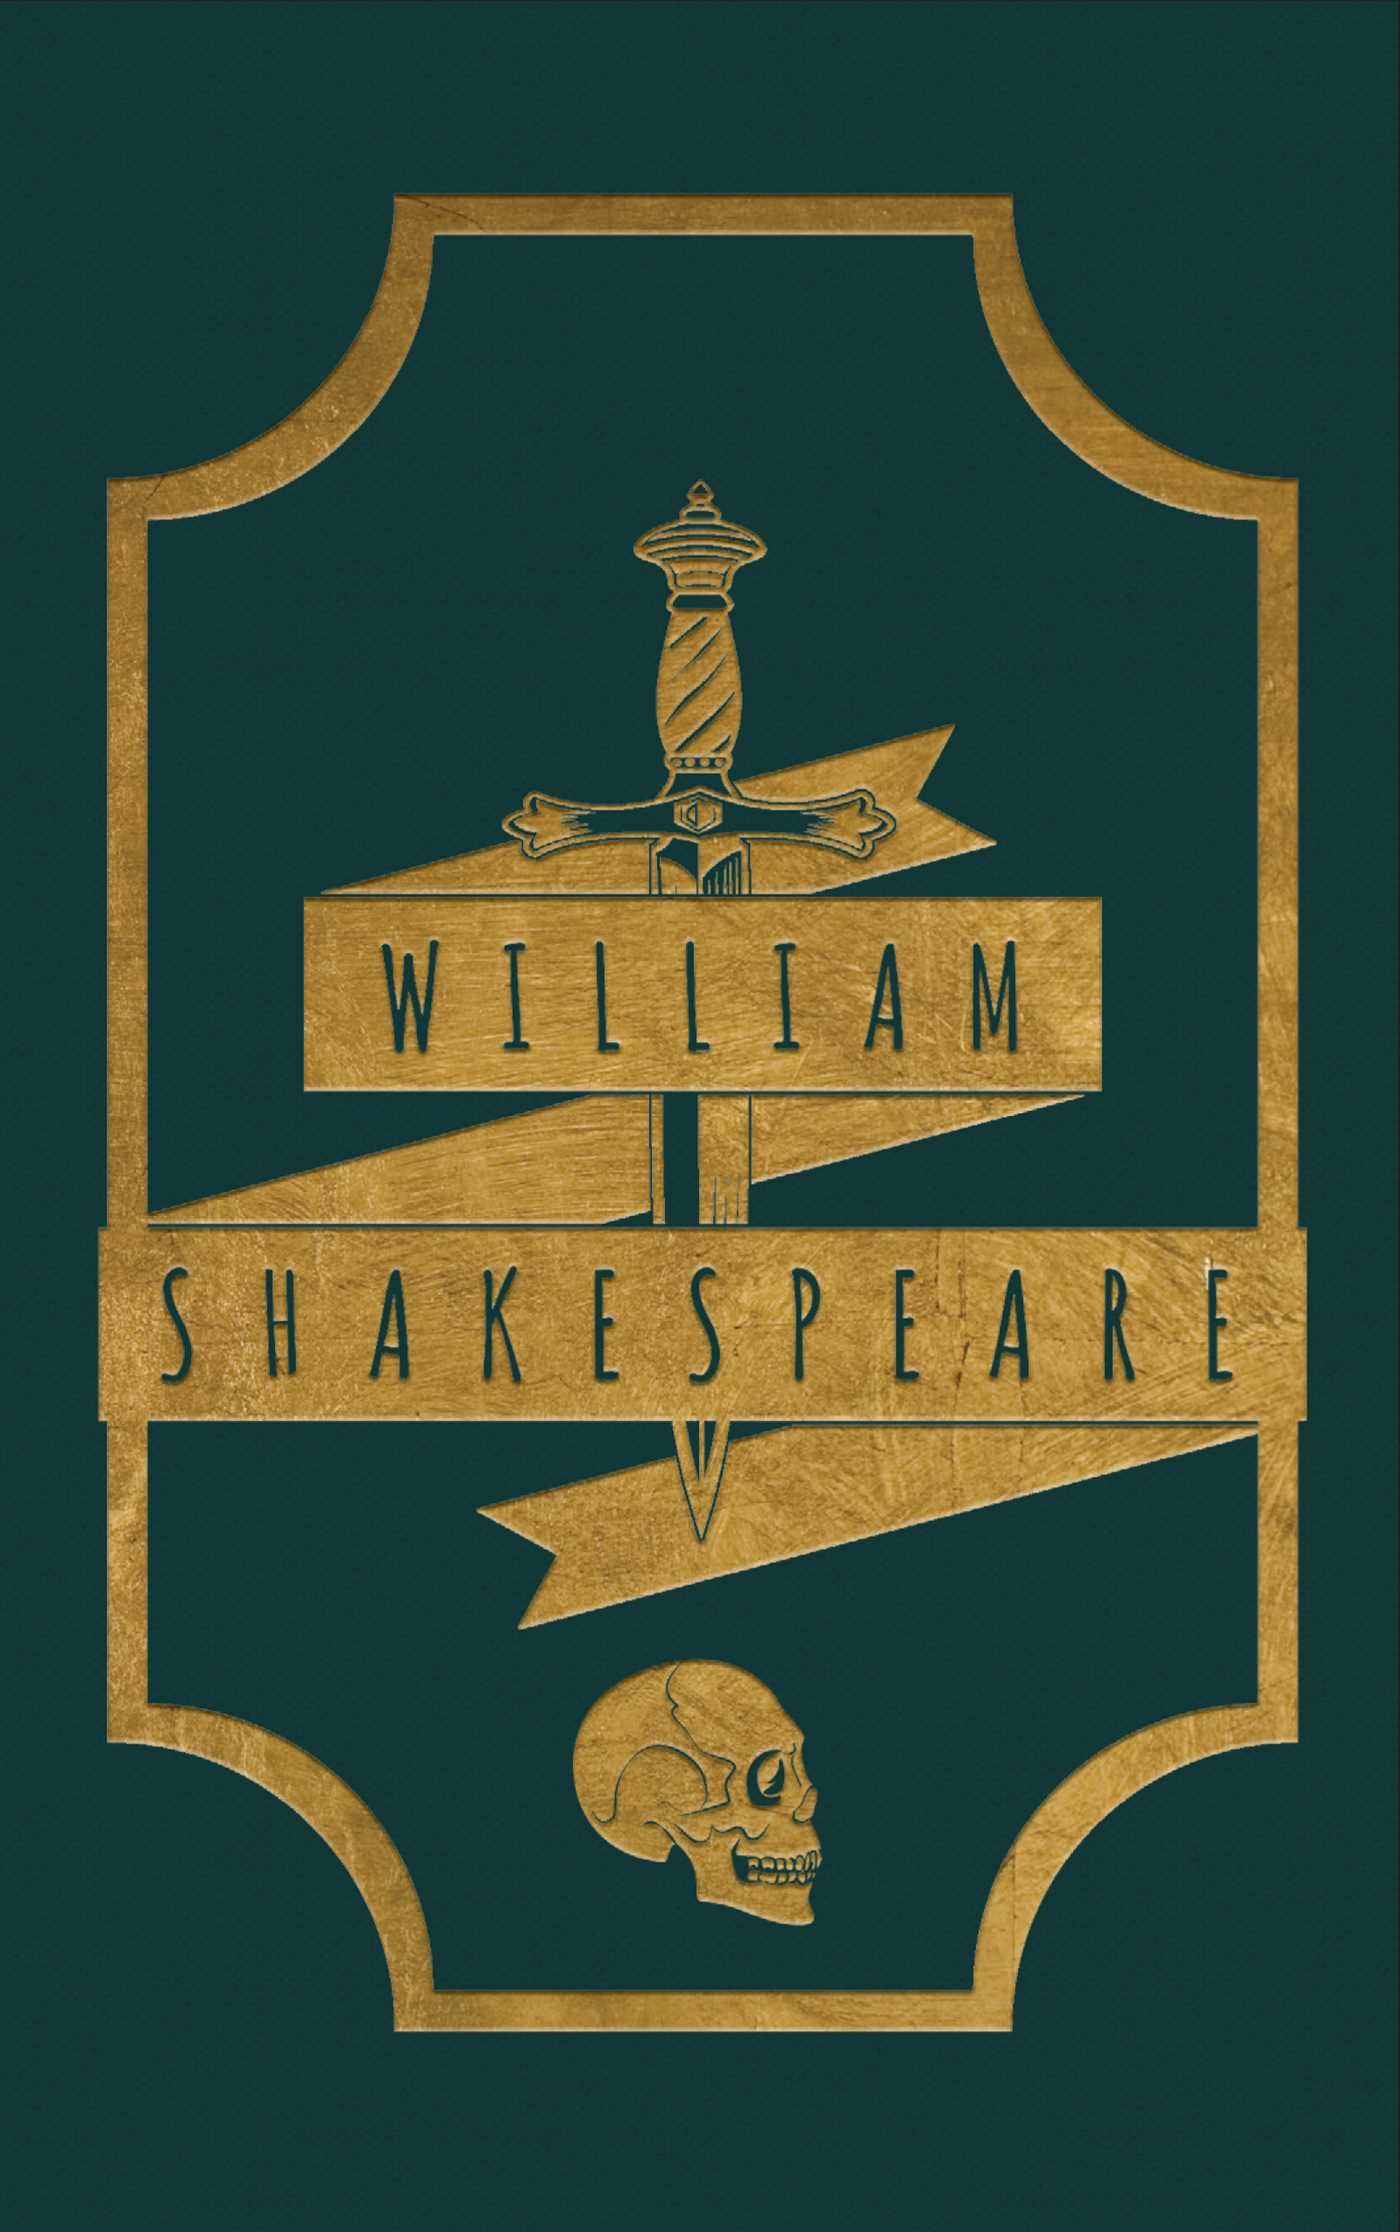 Literary stationery sets william shakespeare 9781683831044.in02